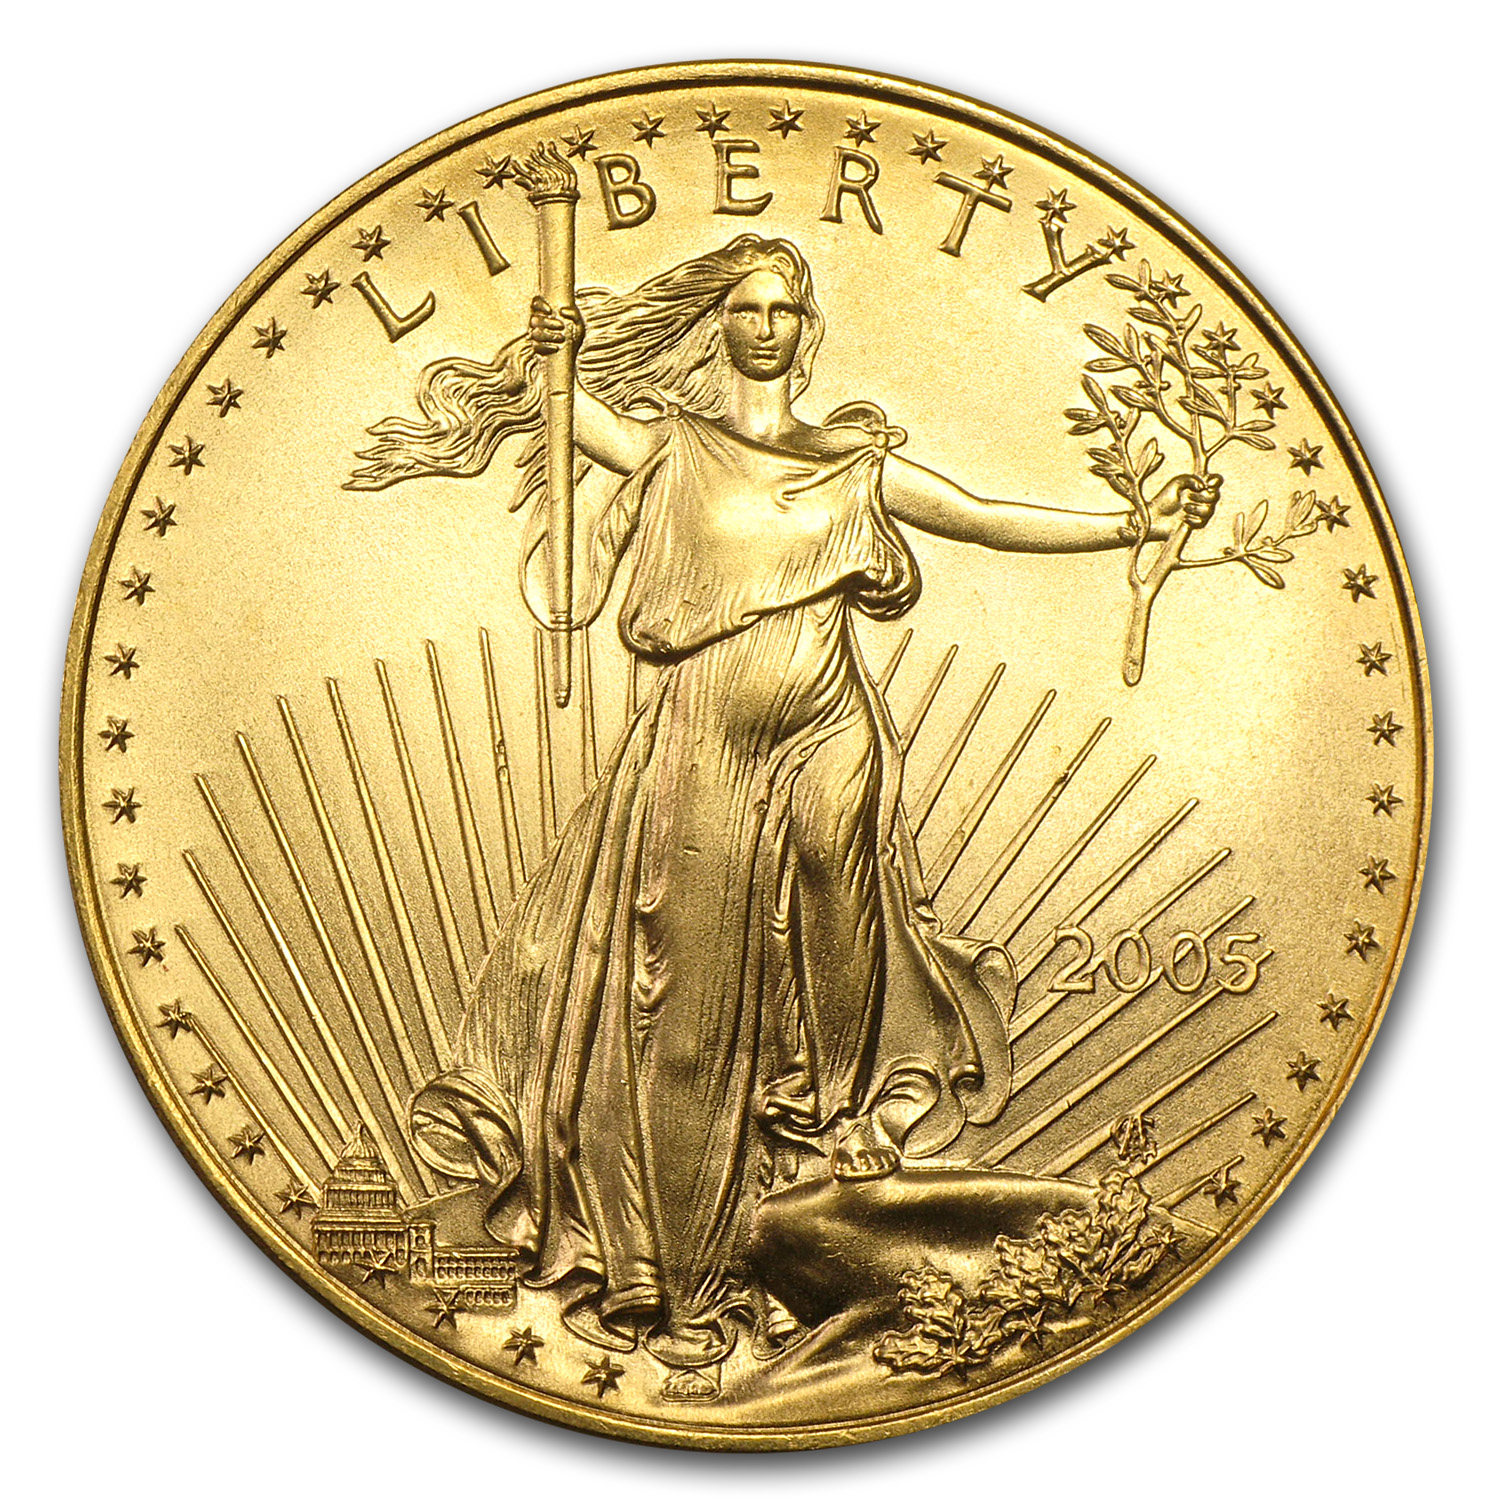 2005 1 oz Gold American Eagle (BU)